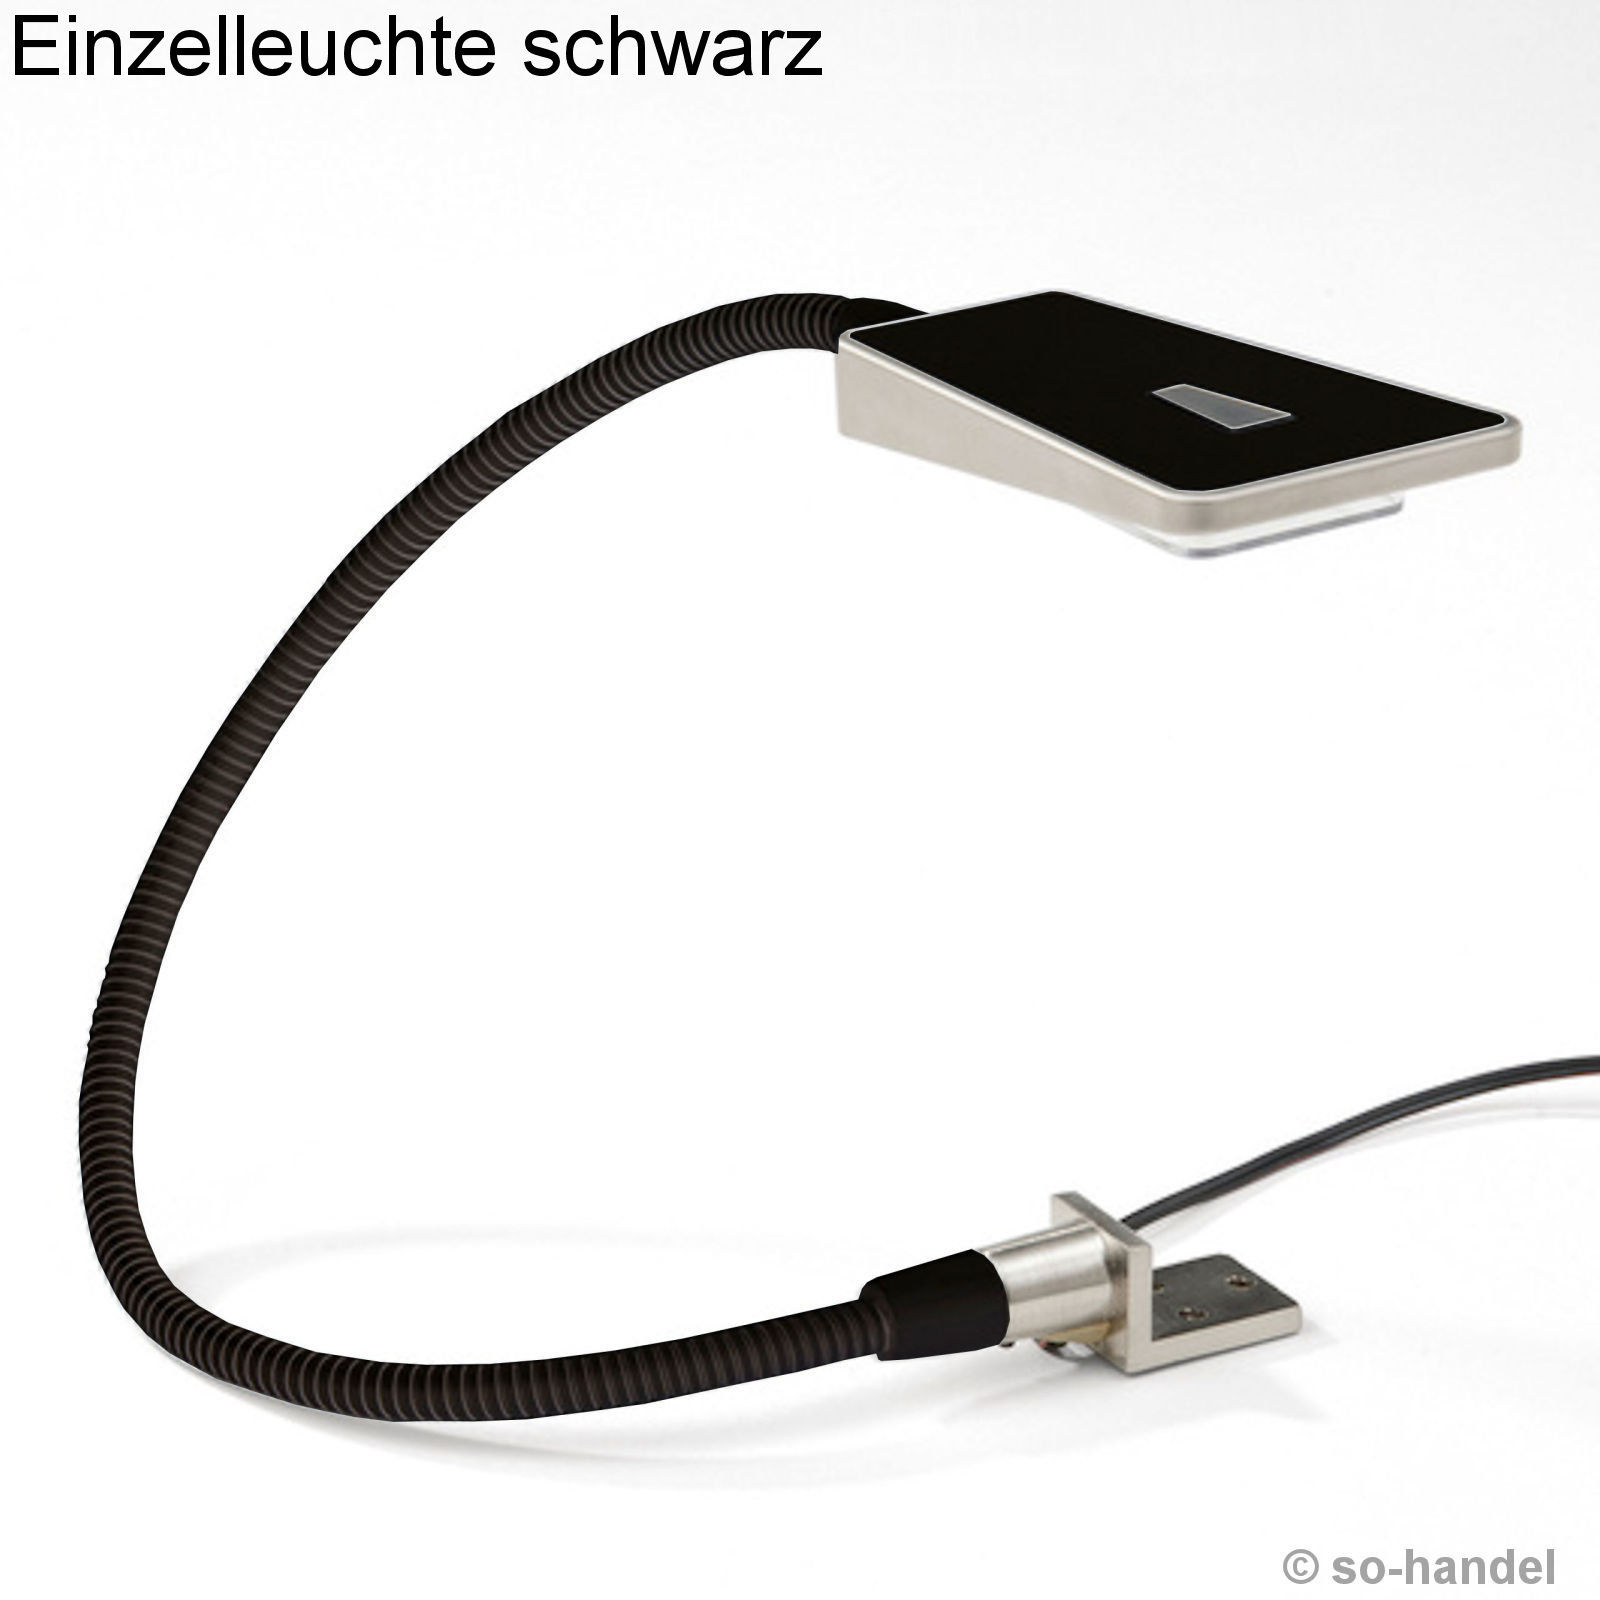 Bettleuchten Led Flexible Led Leseleuchte Bettleuchte Luminoso 12v 2w